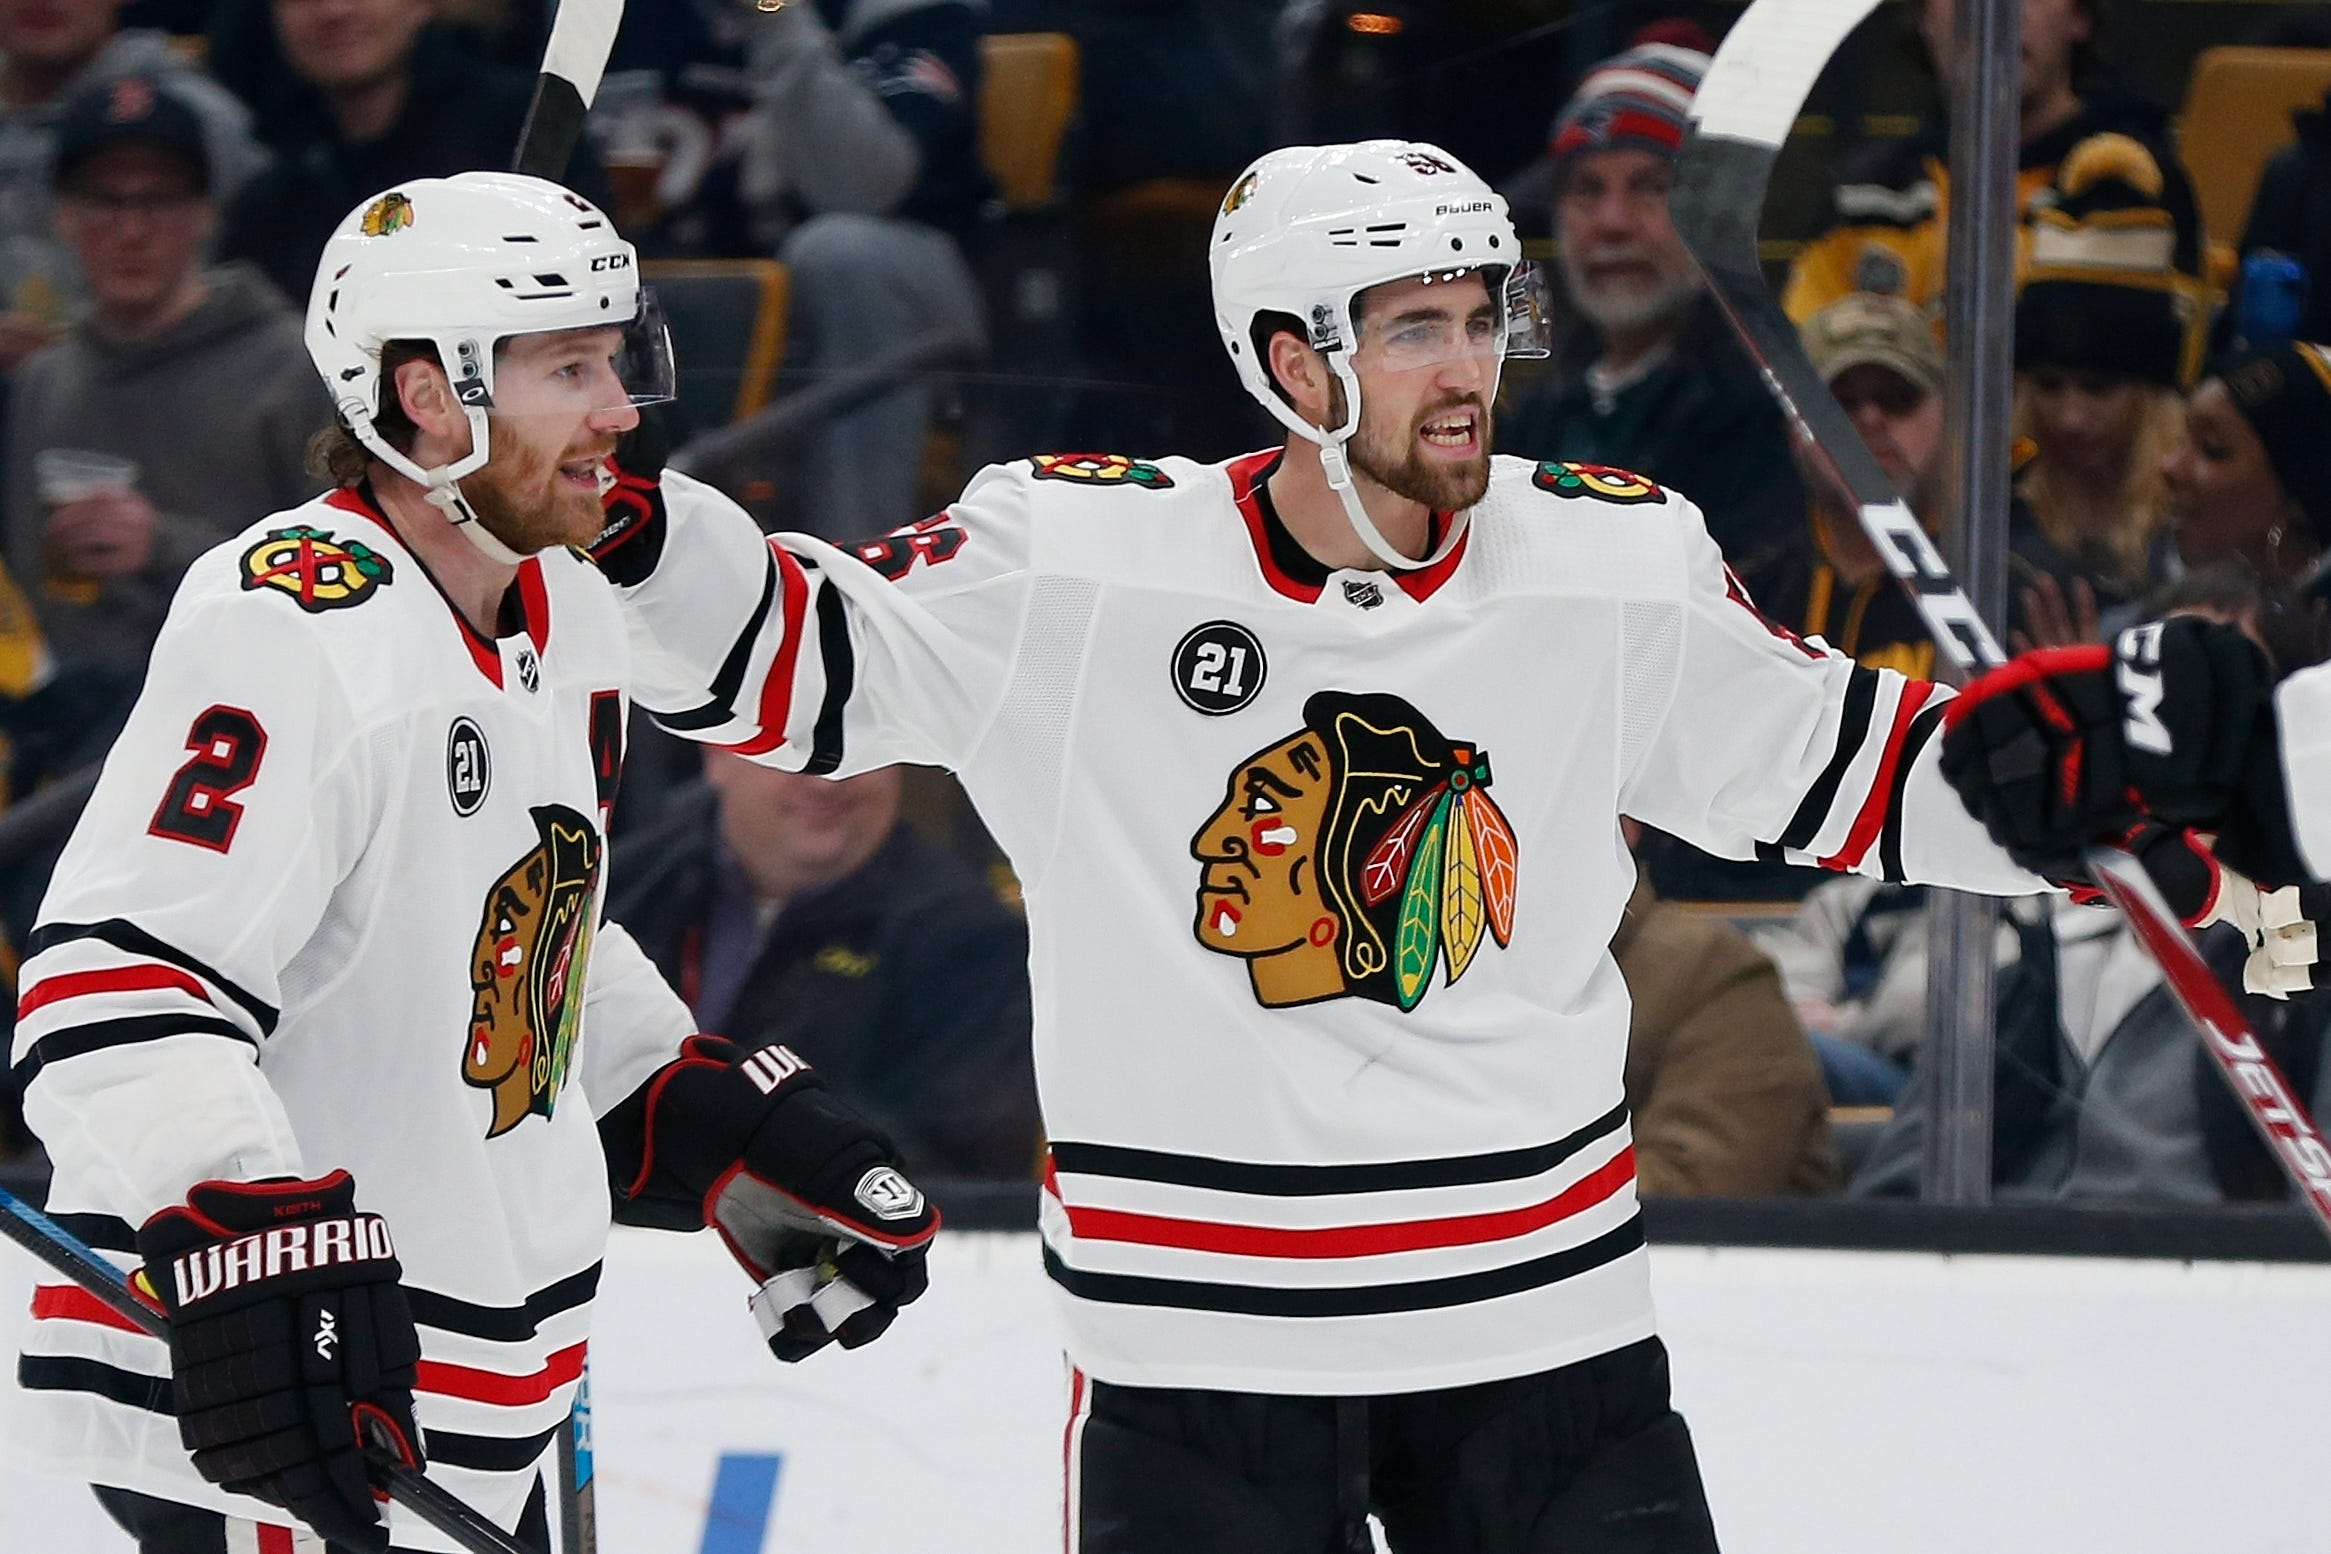 Bruins beat Blackhawks 6-3, snap Chicago's 7-game win streak